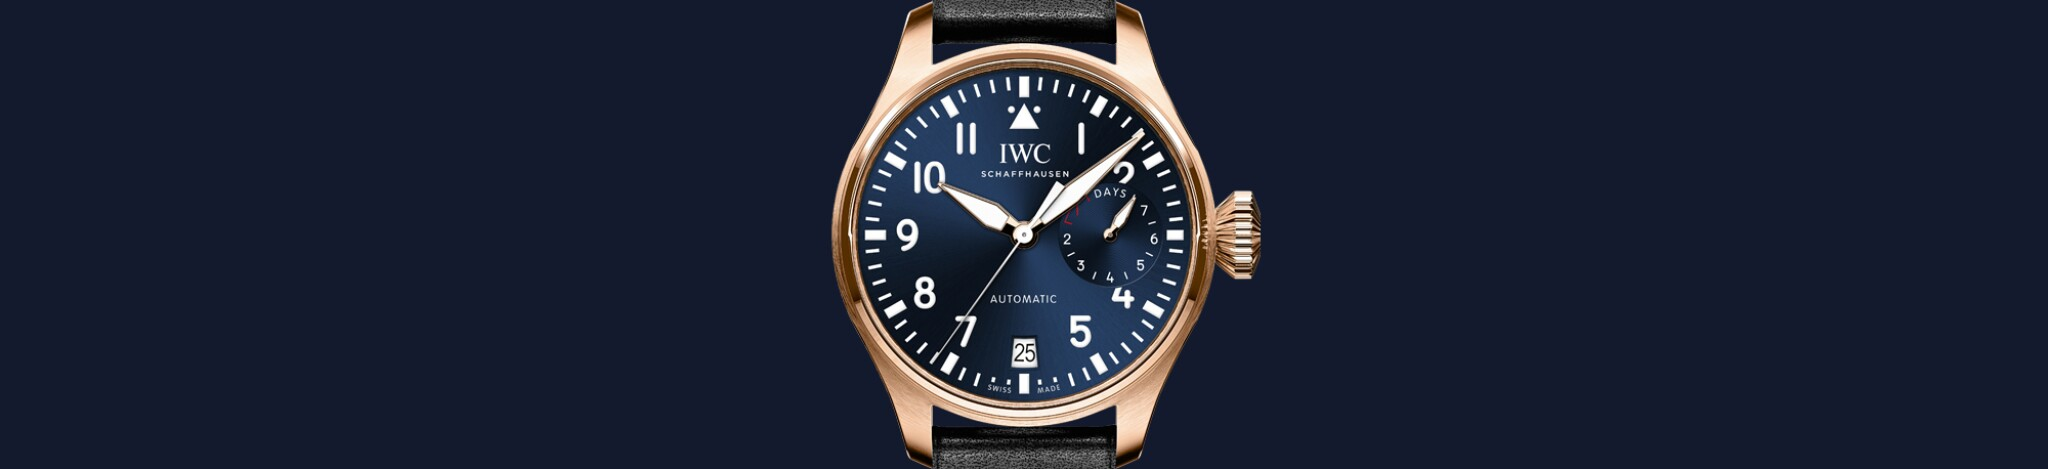 IWC ICON: to benefit the Antoine de Saint-Exupéry Youth Foundation